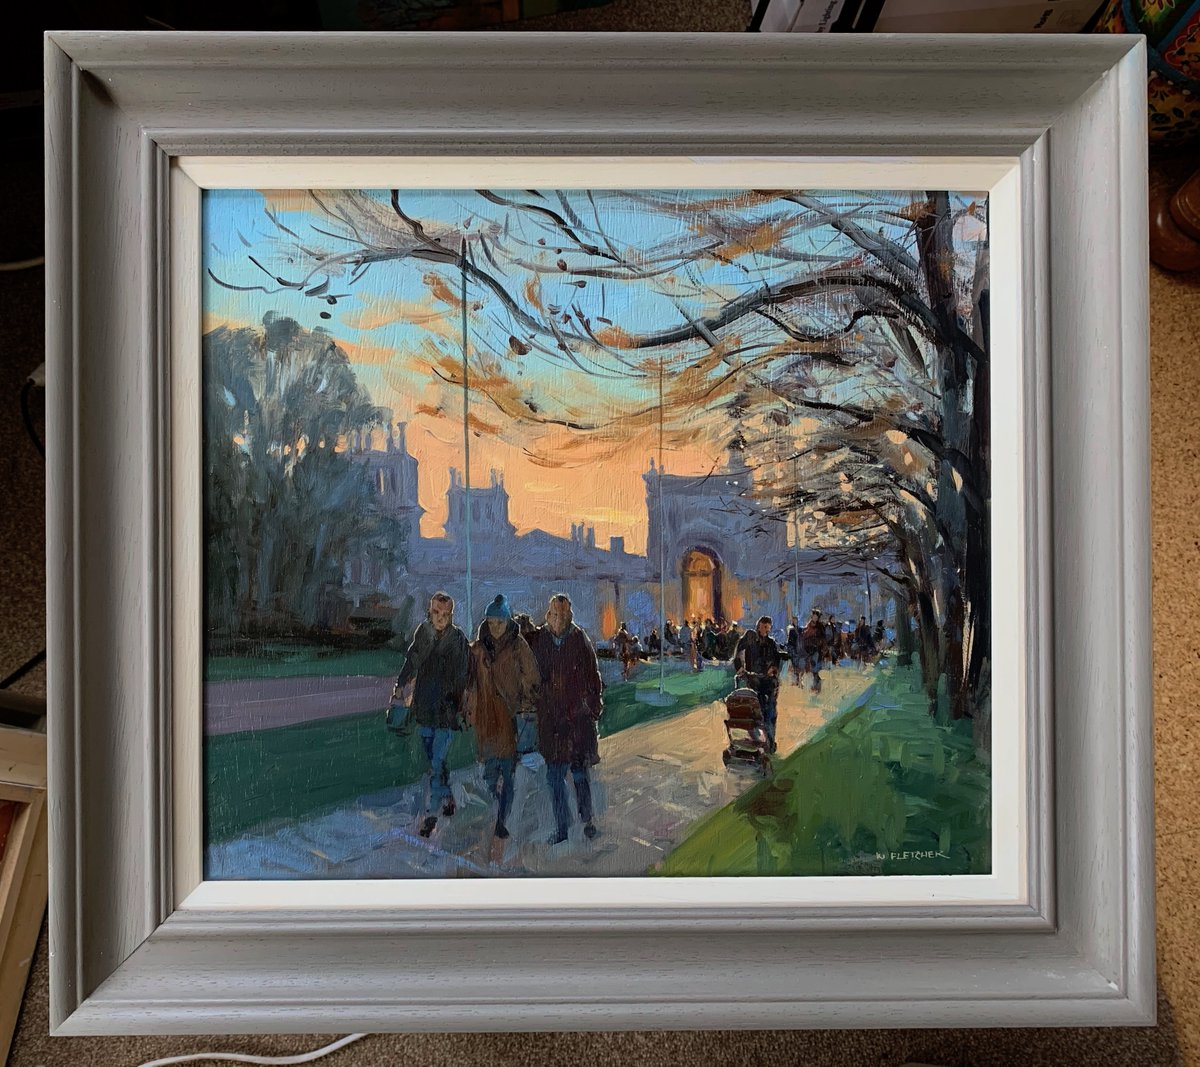 'Dusk over the palace'   #Blenheim #oilpainting             Oil on board, 21 x 19 inches framed